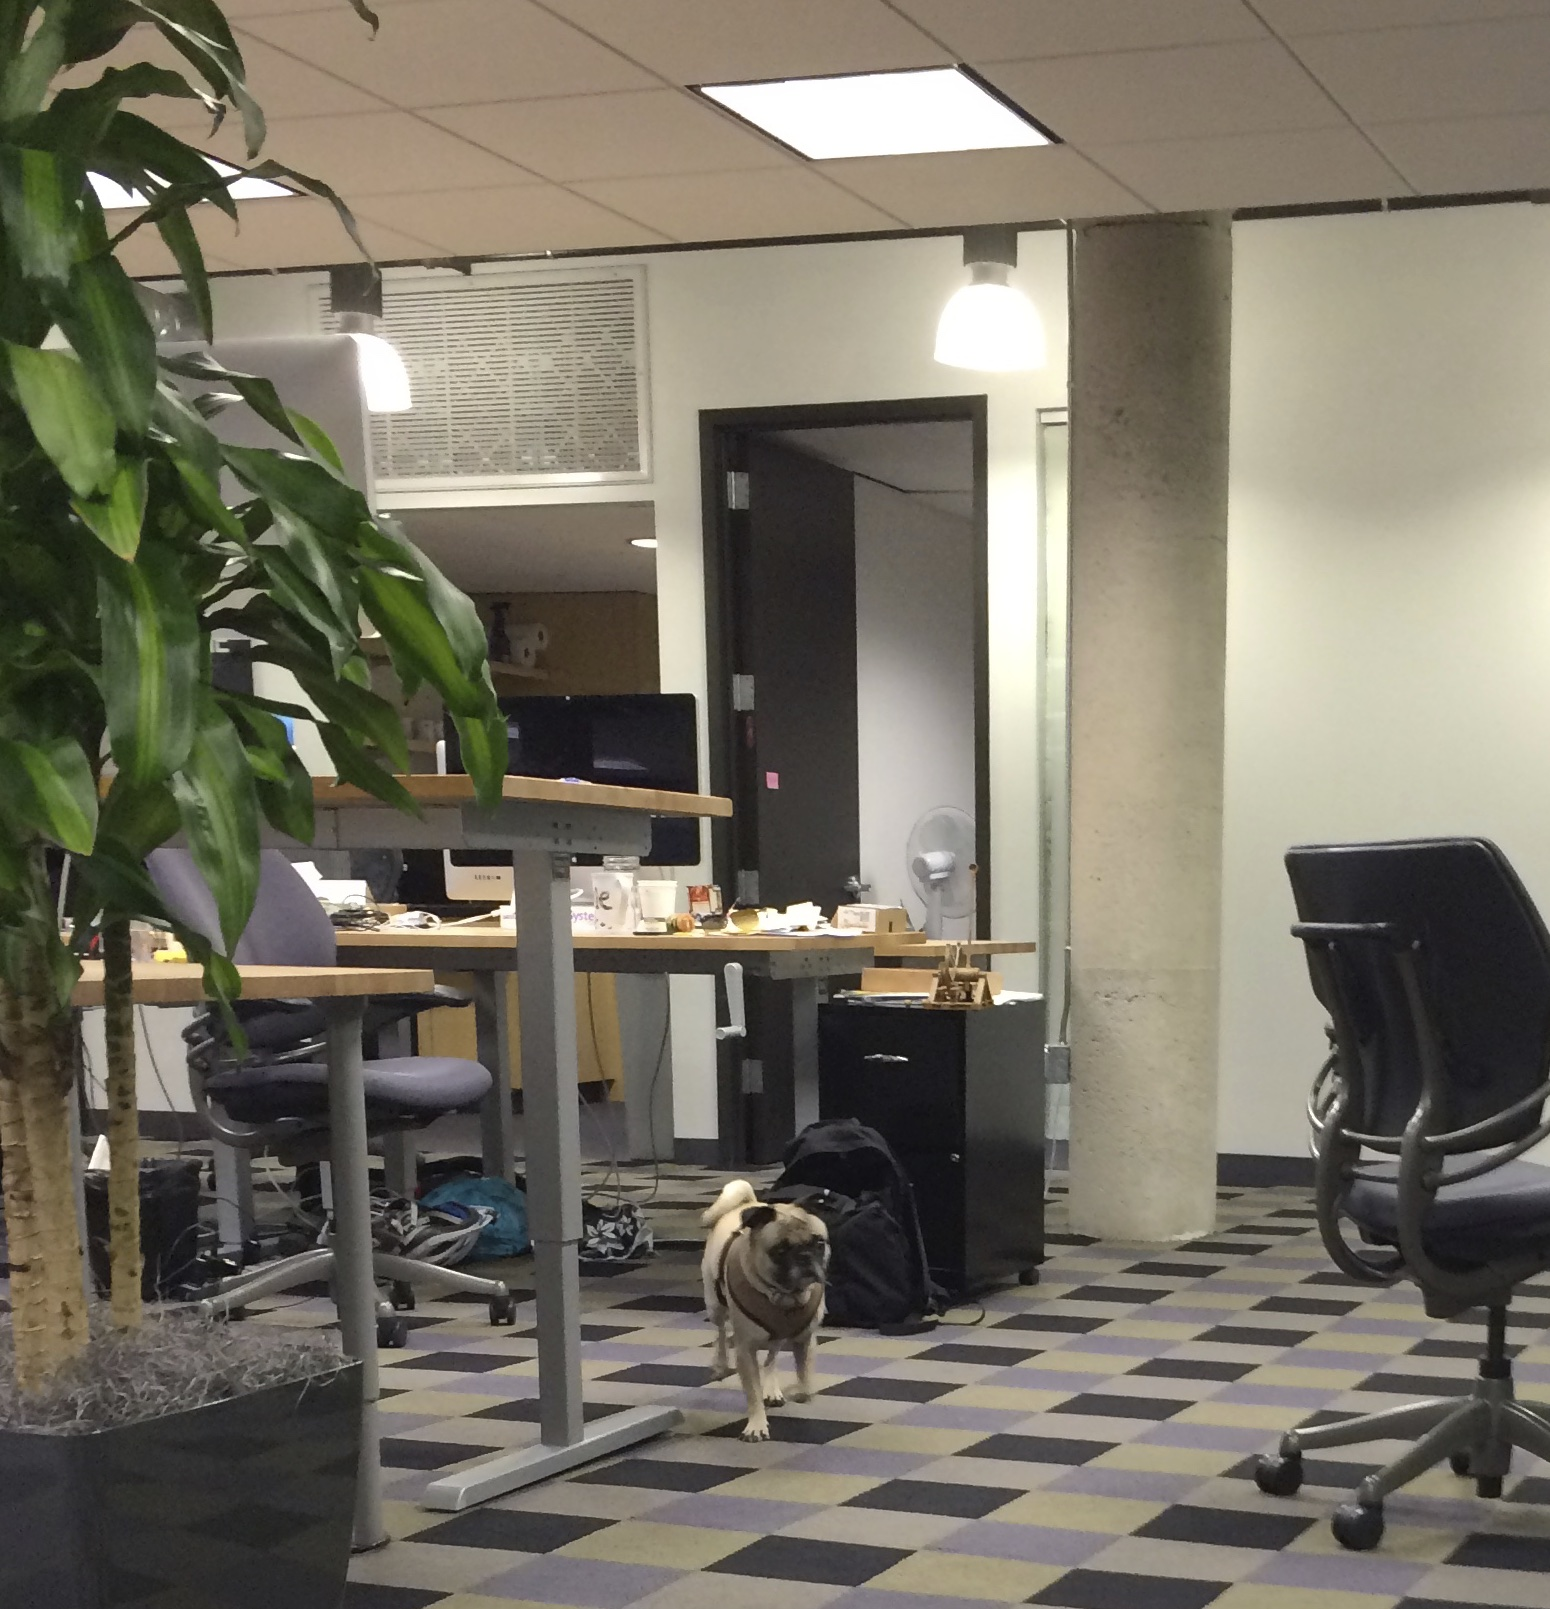 Pug In An Office Environment